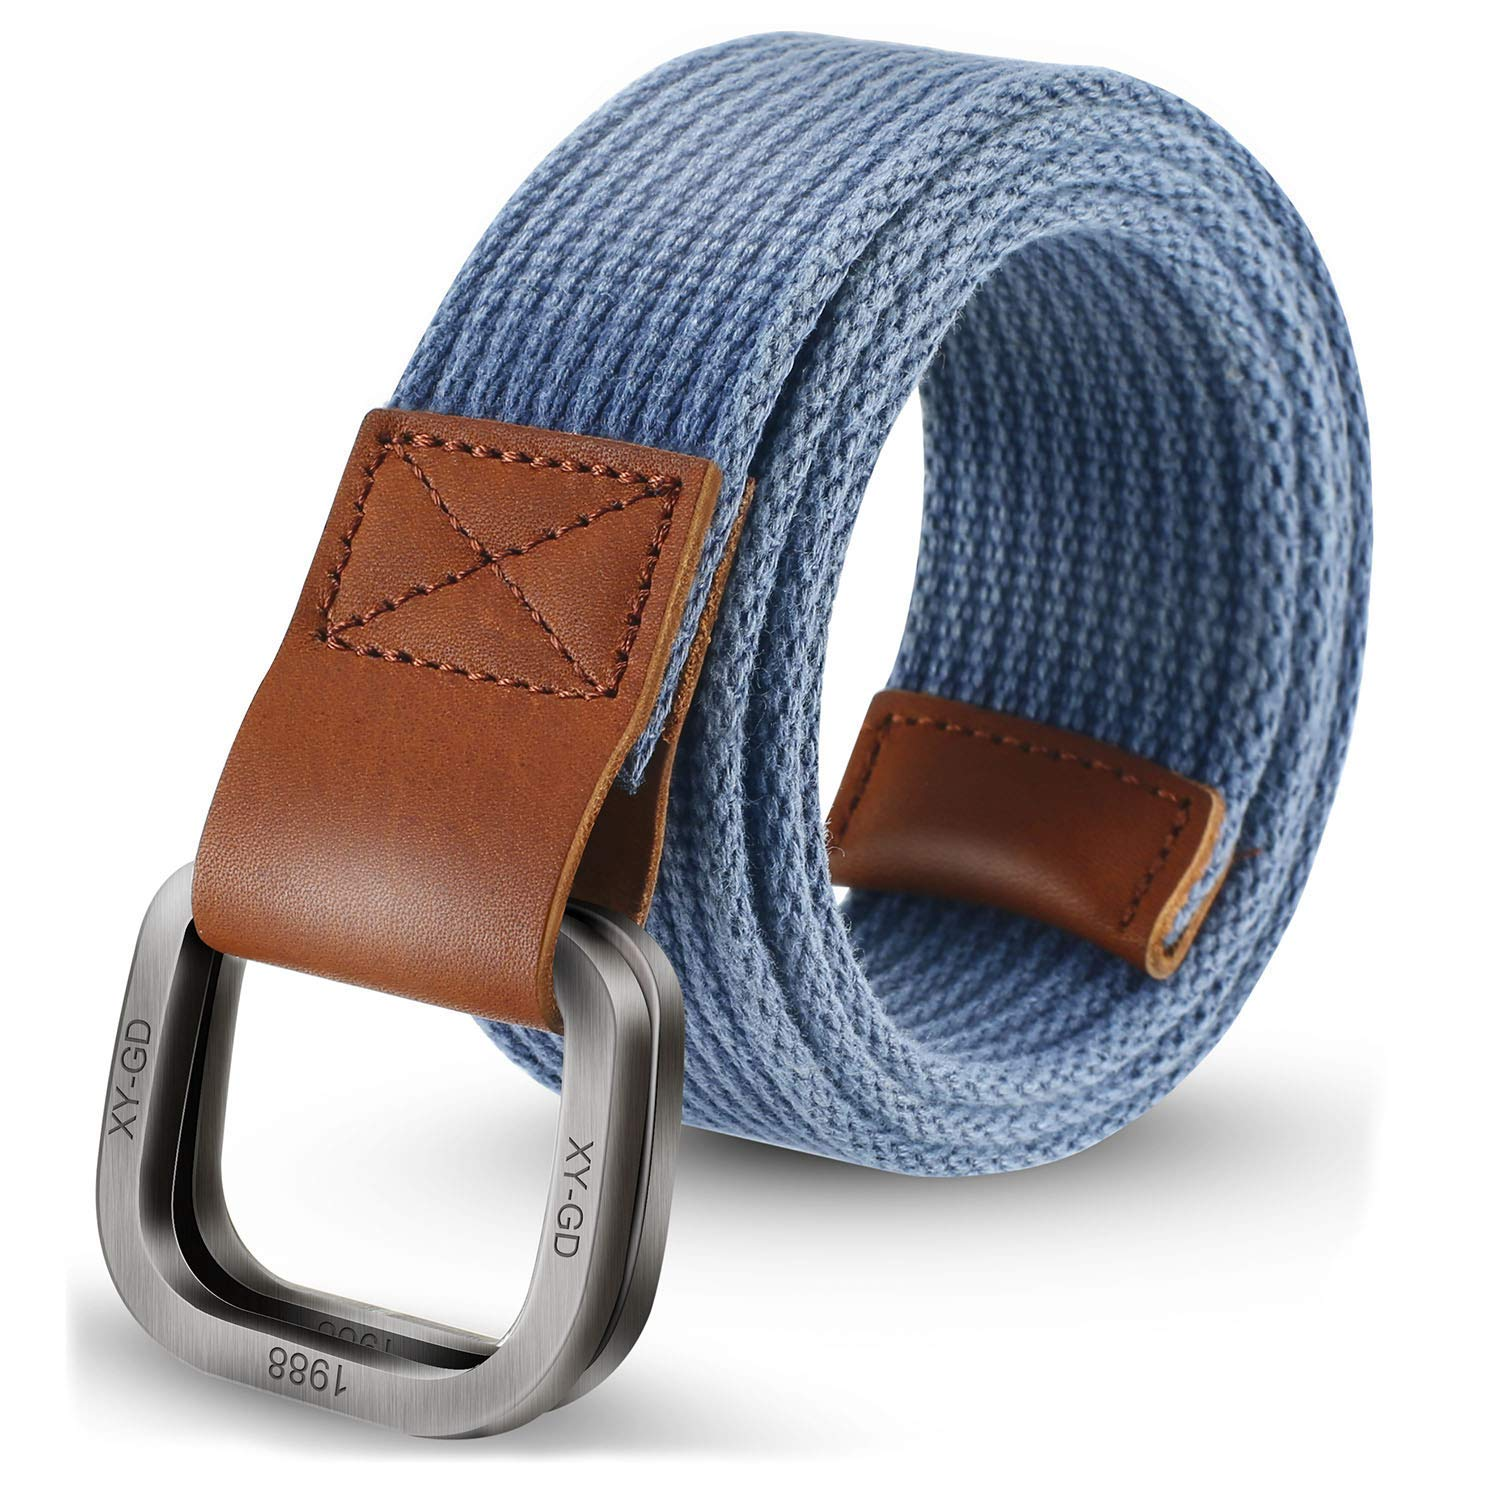 3276bfabc2a Get Quotations · ITIEZY Men s Canvas Belt Military Style Double D-Ring  Buckle Casual Webbing Belt